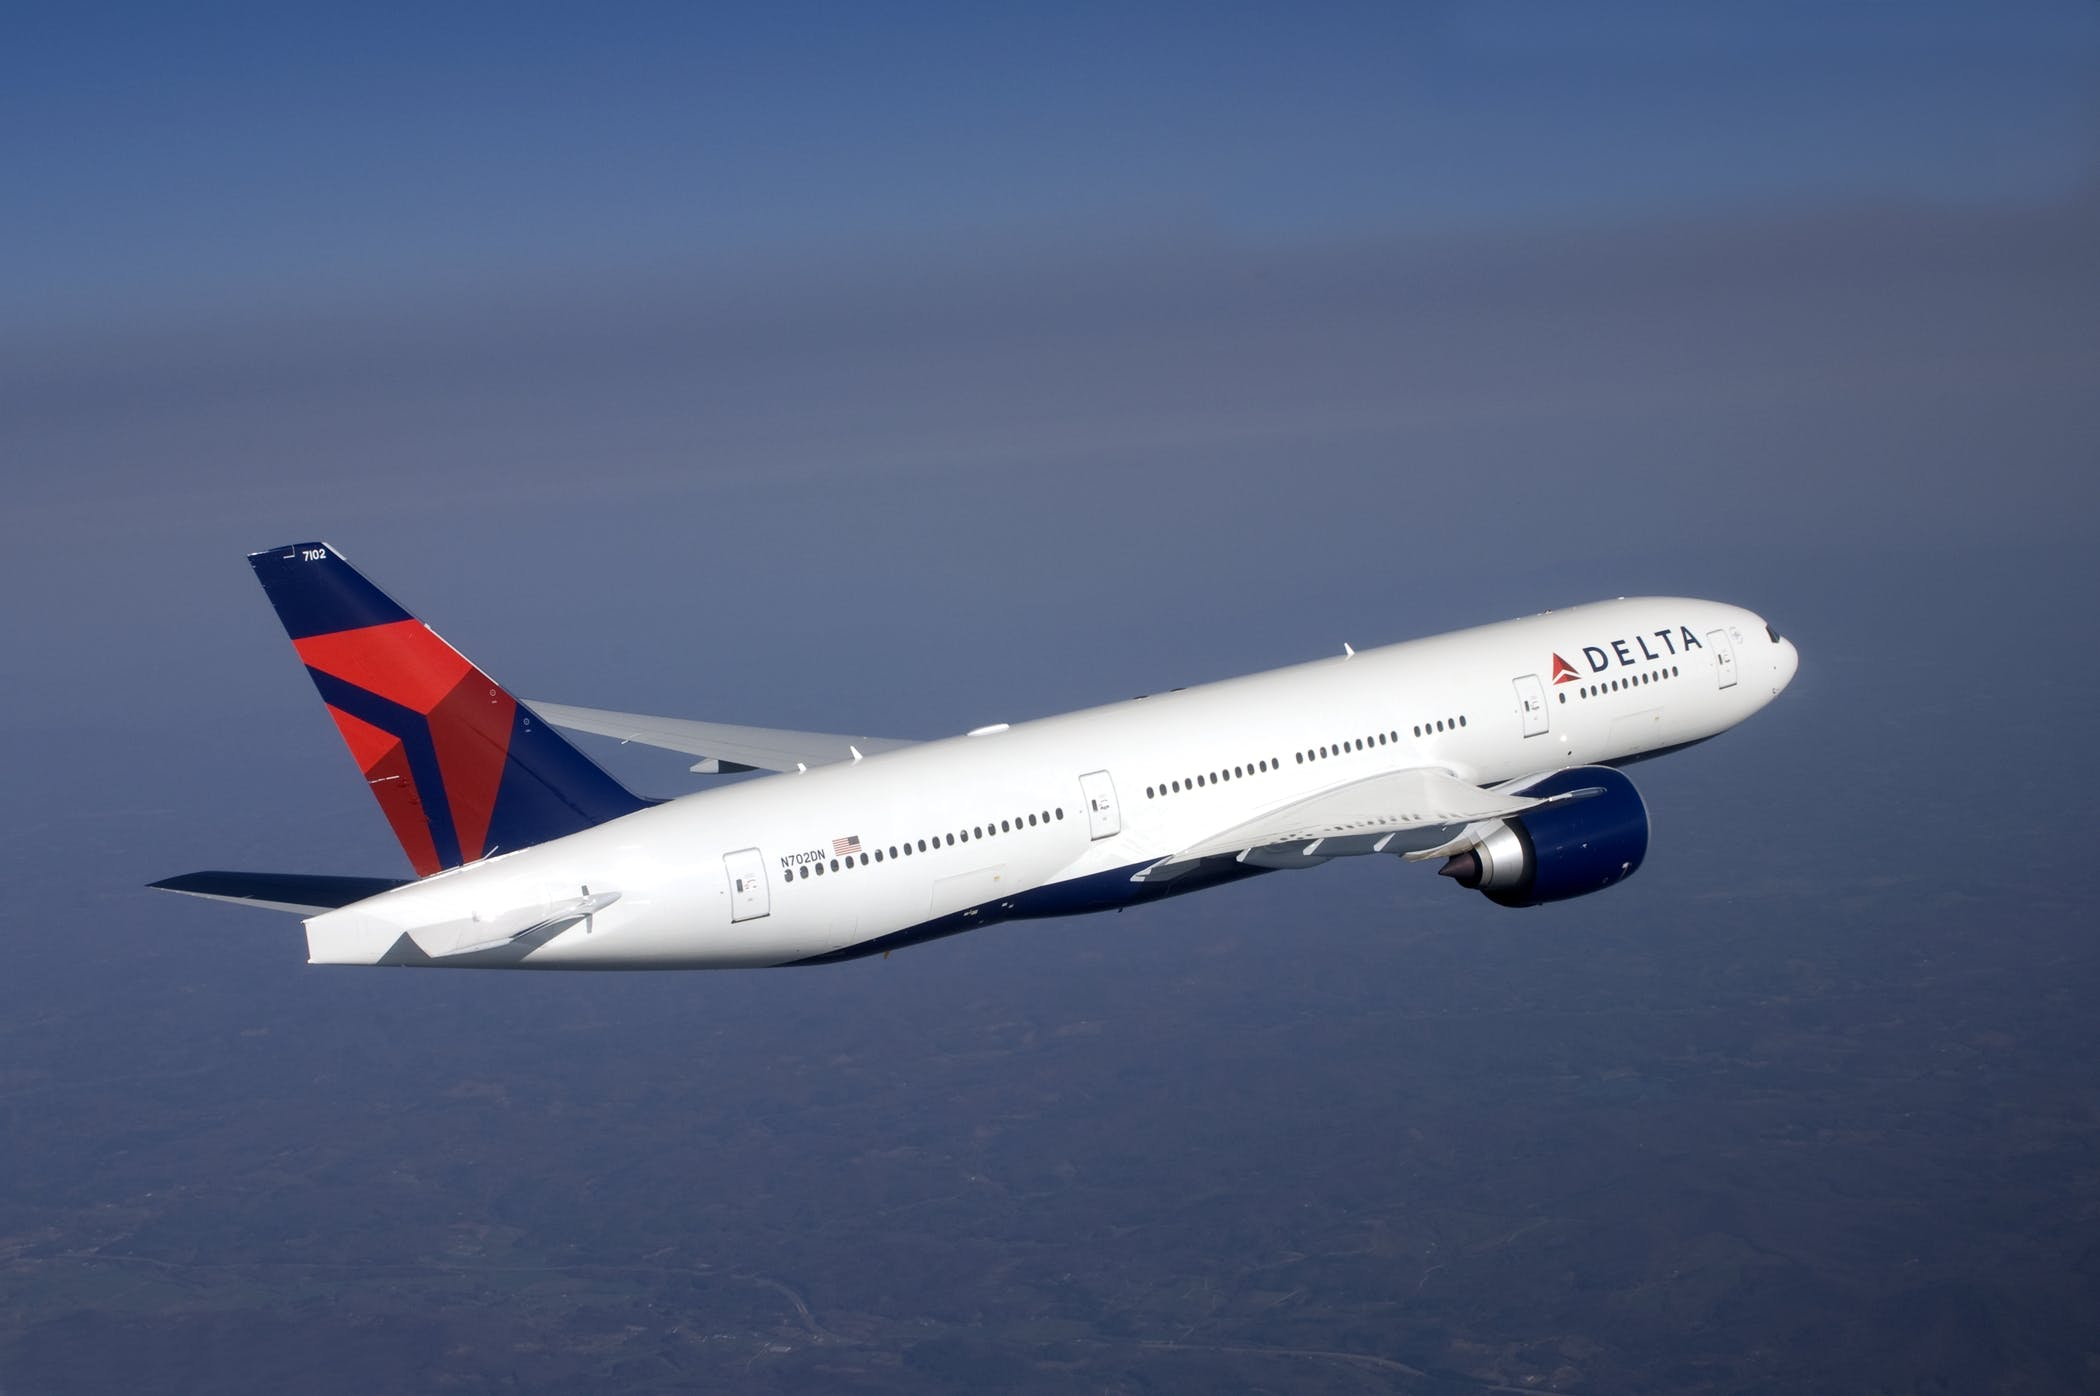 Diverse training content builds tomorrow's leaders at Delta Air Lines